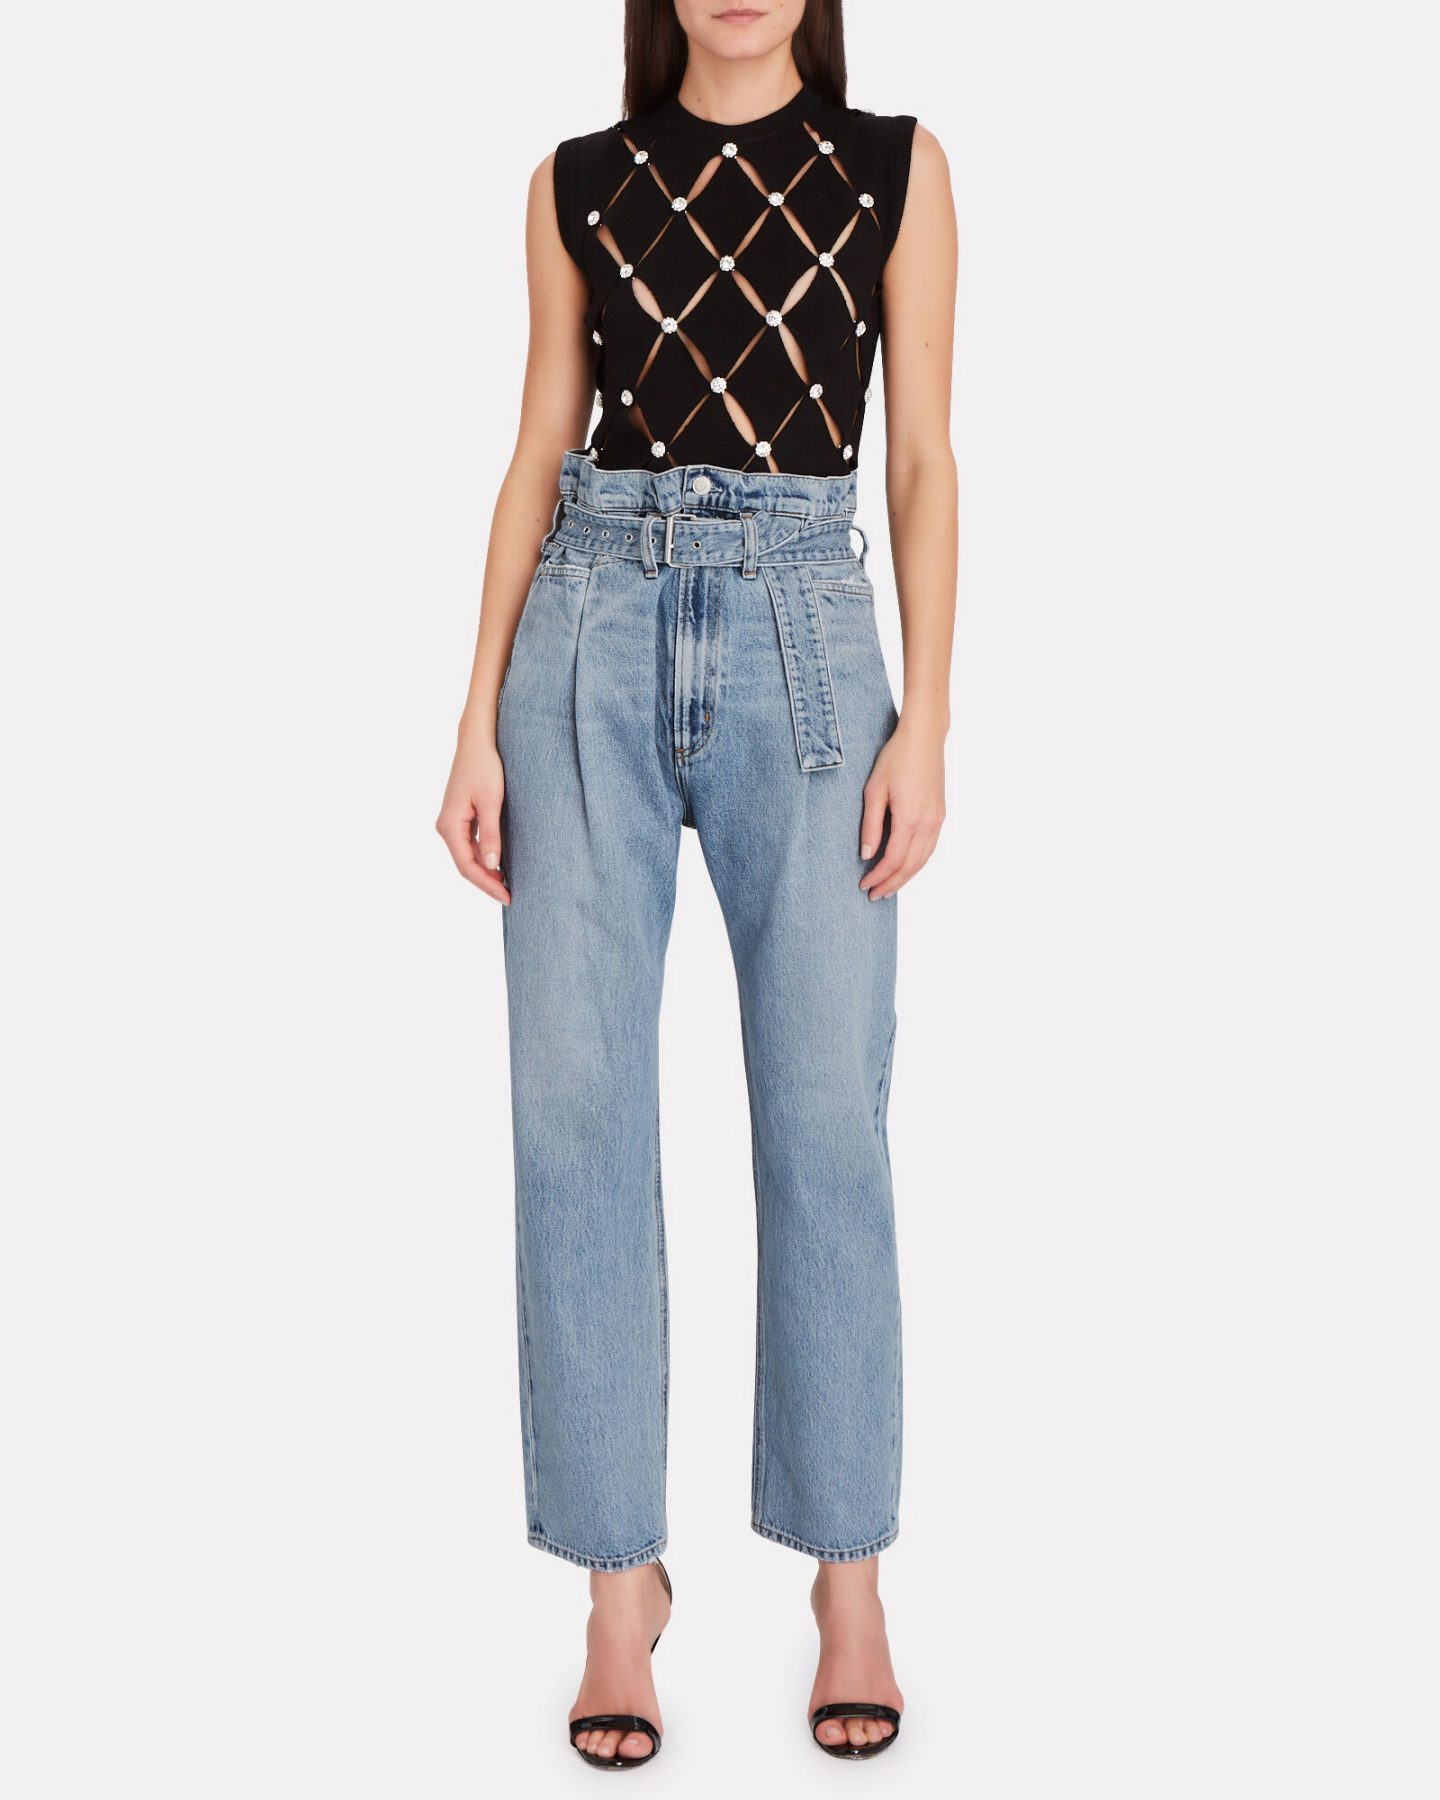 Agolde pleated jeans